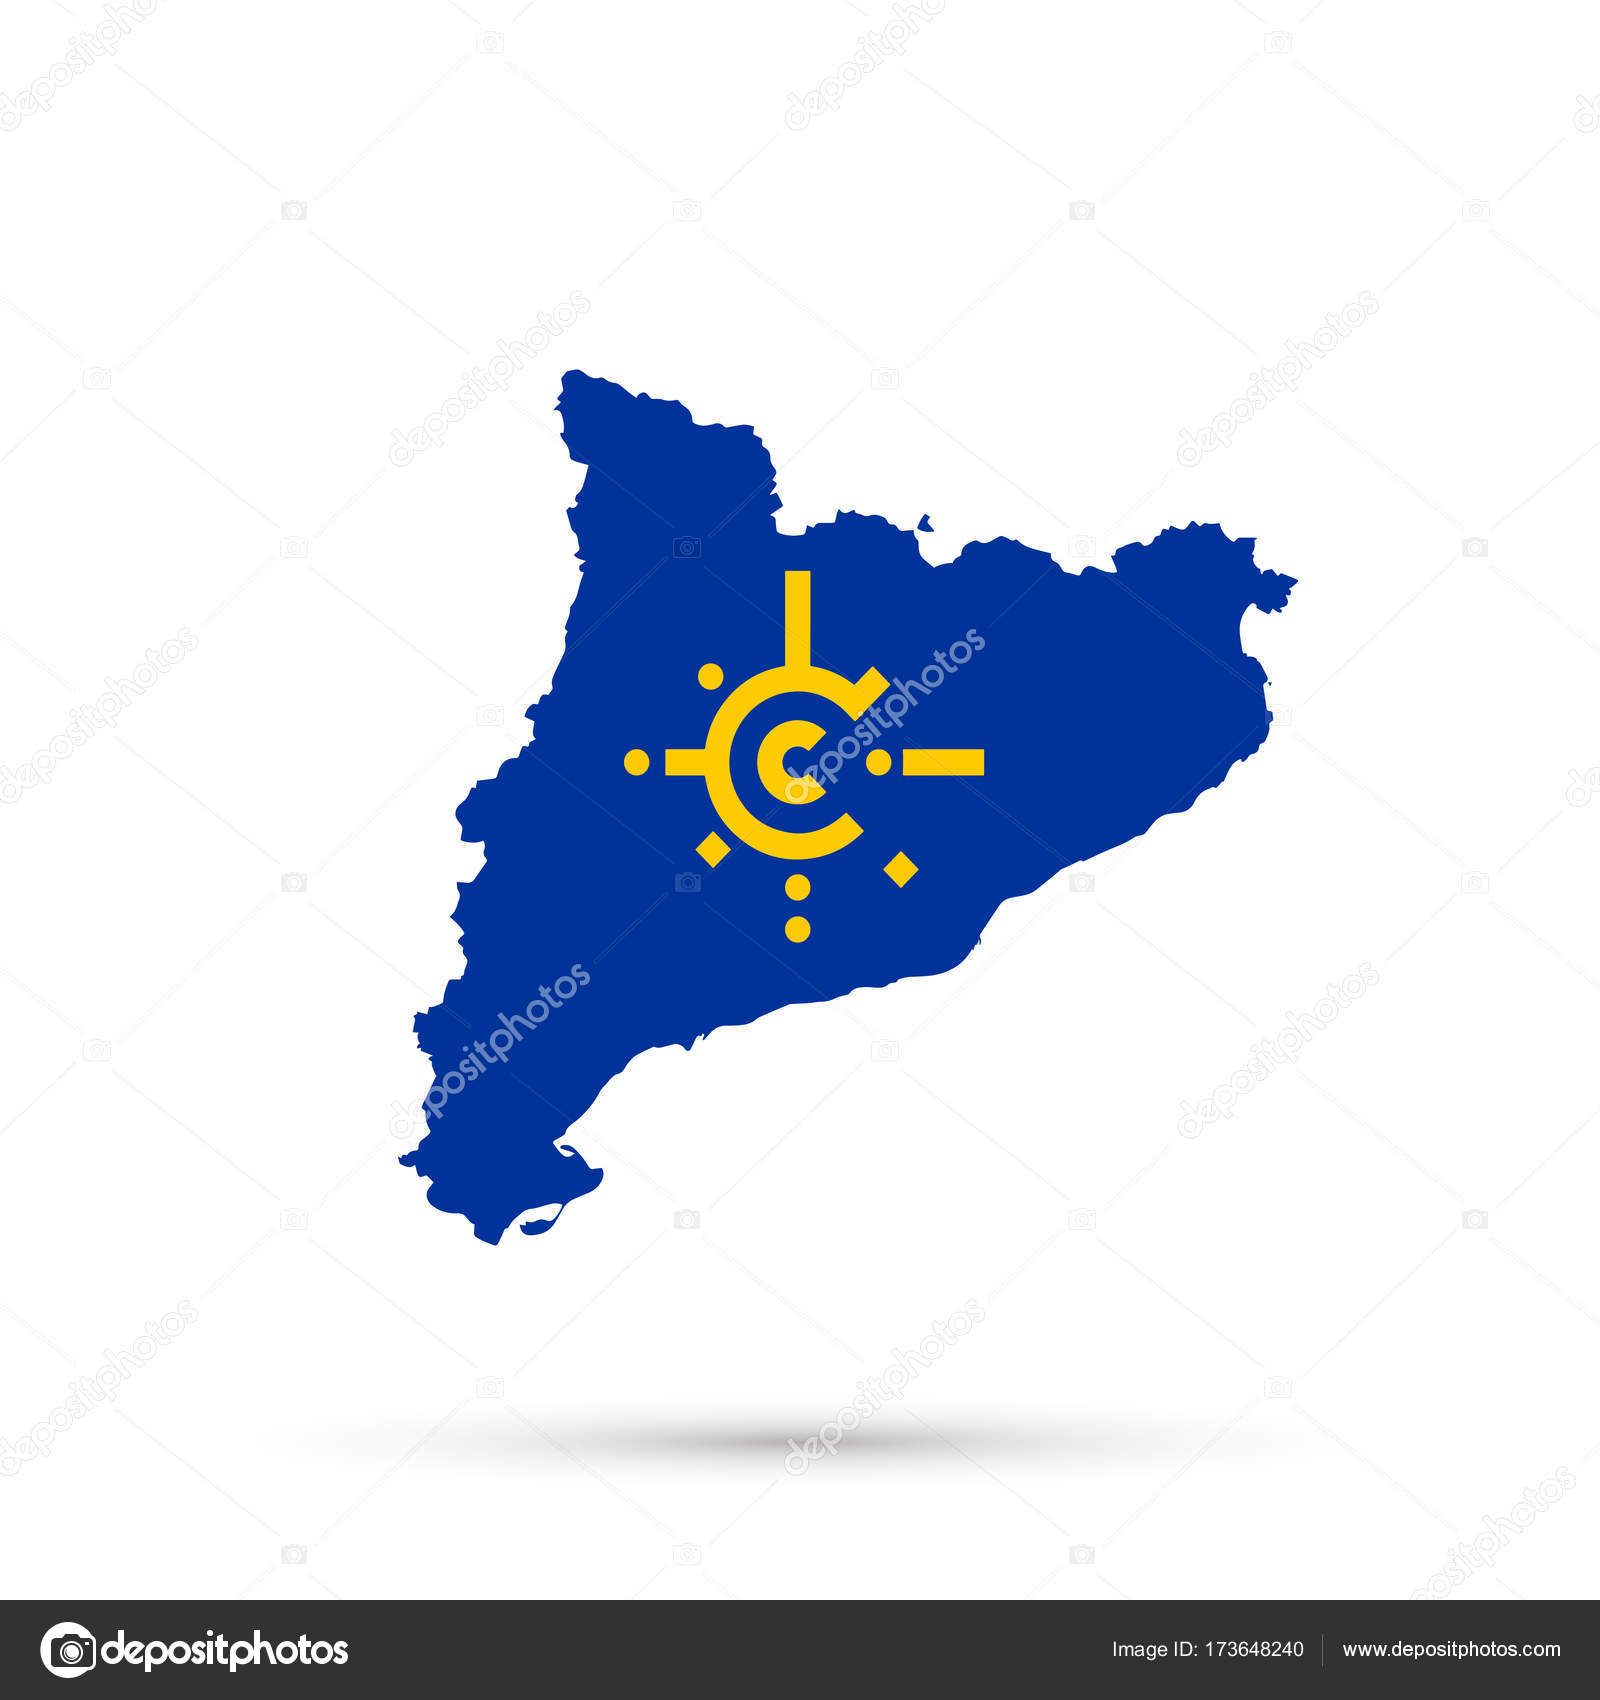 Catalonia Map In Central European Free Trade Agreement Cefta Flag